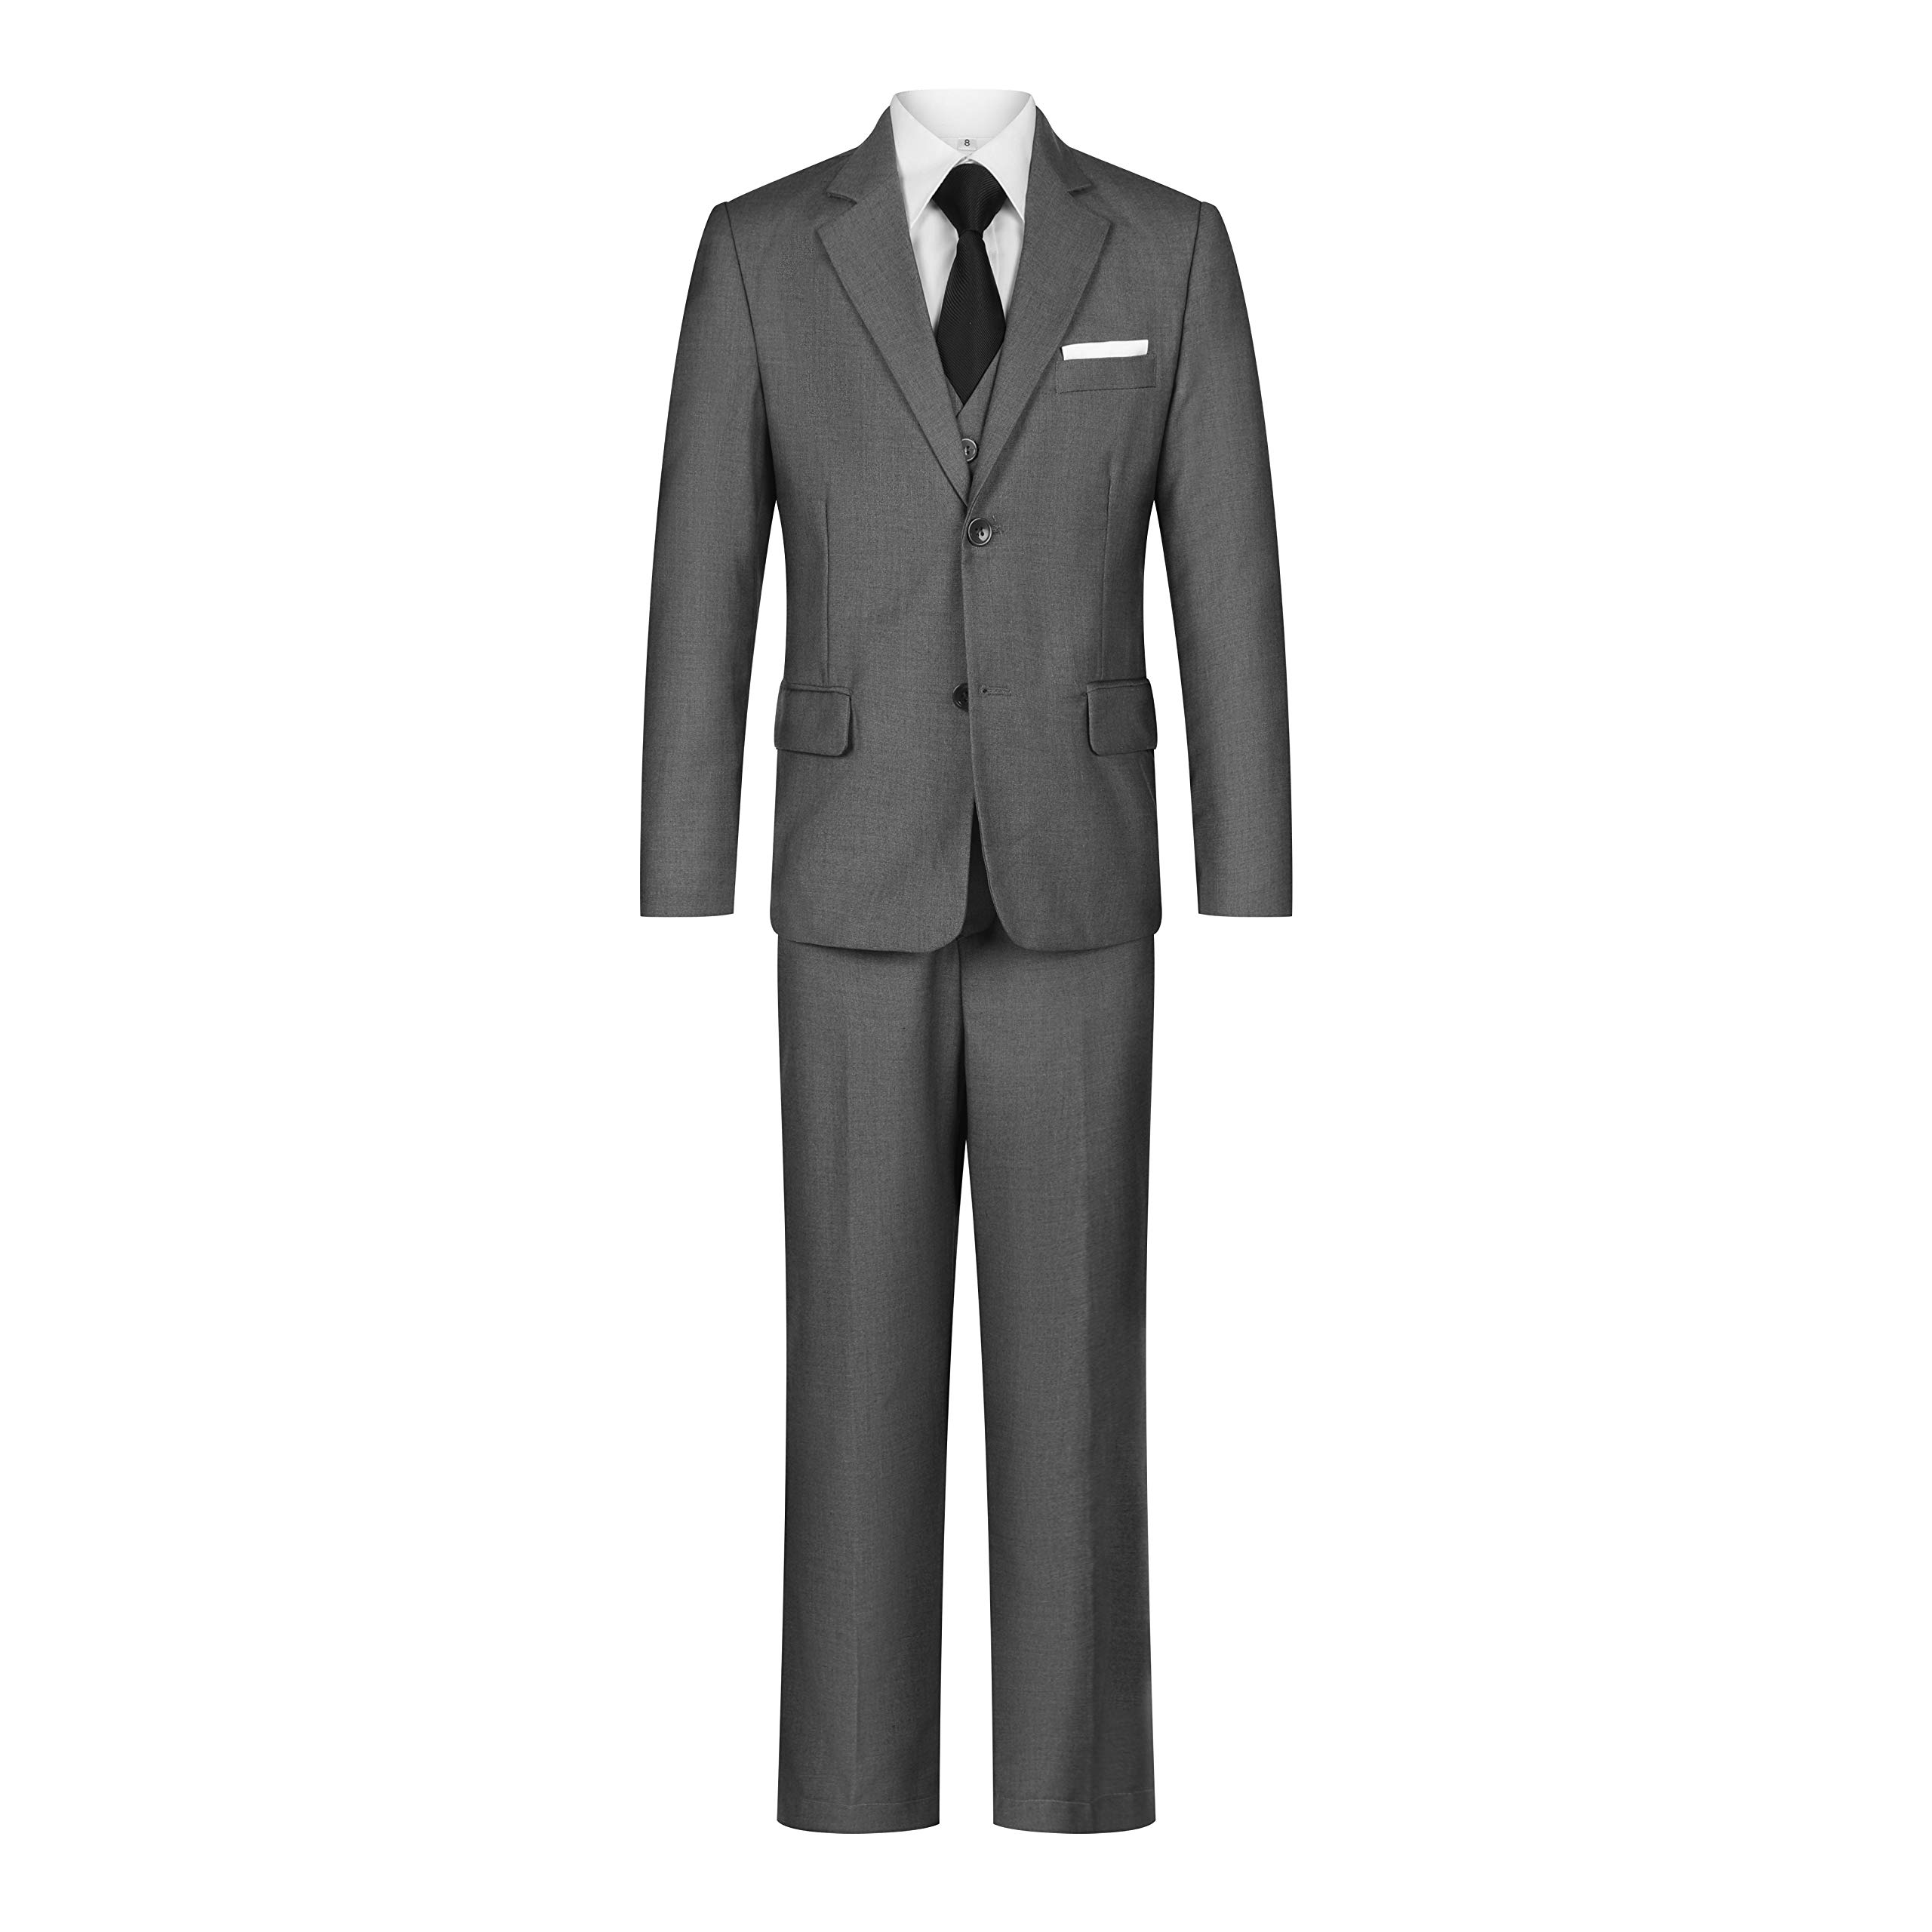 Flyme Toddler Kids Boys Suits 5 Piece Slim Fit Suit for Boys Grey Size 5